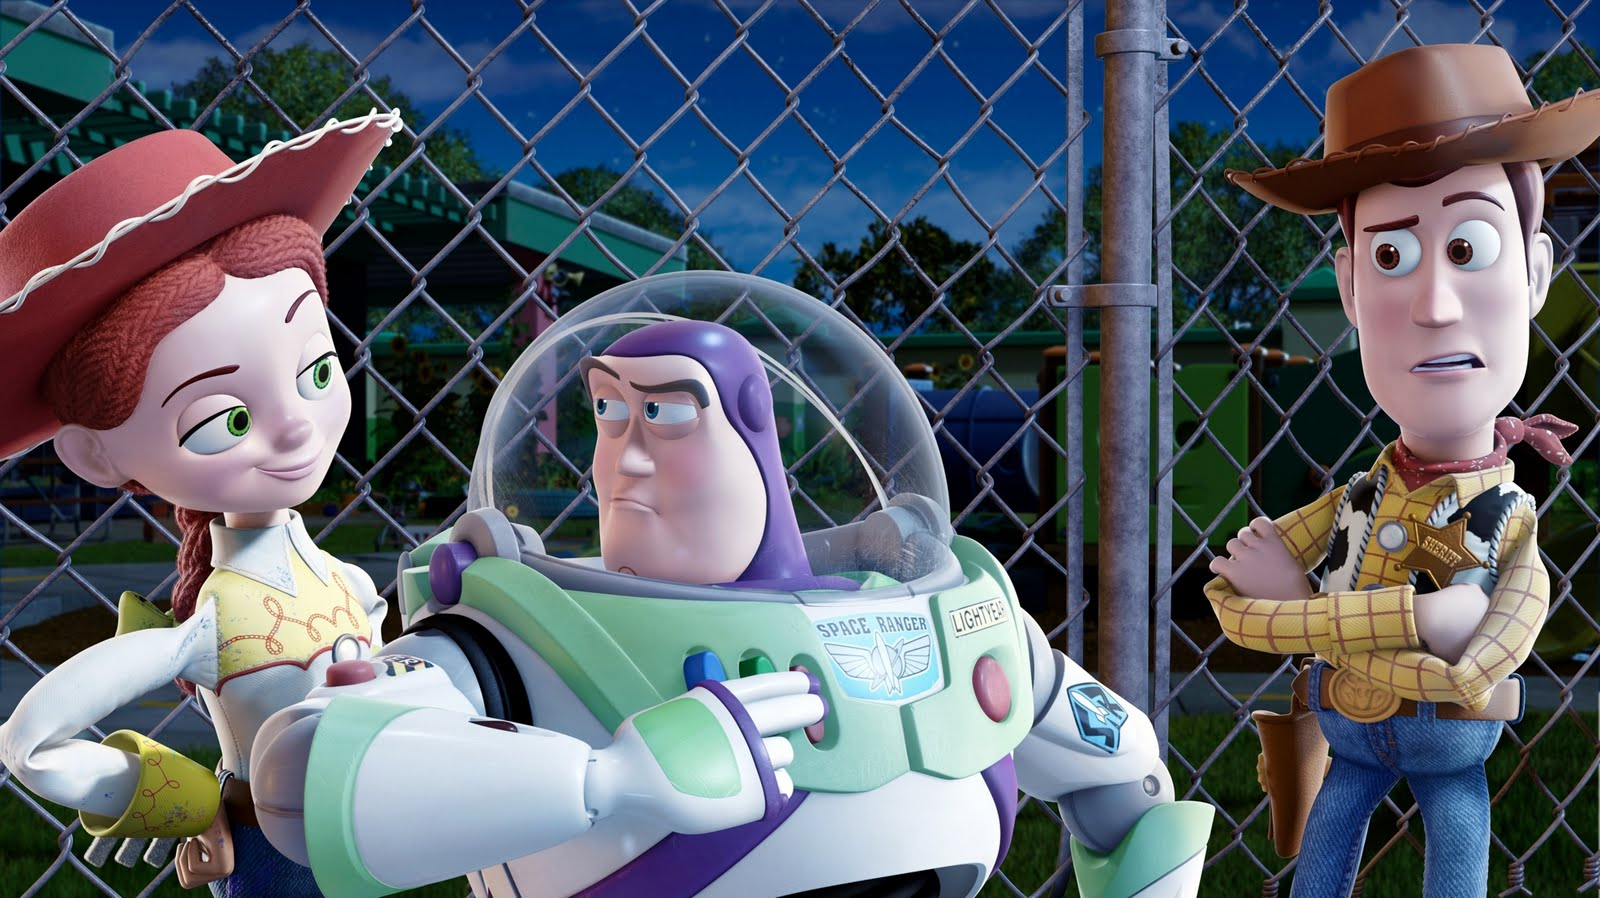 Top Ten Most Fascinating Animated Characters: Number 9 ...